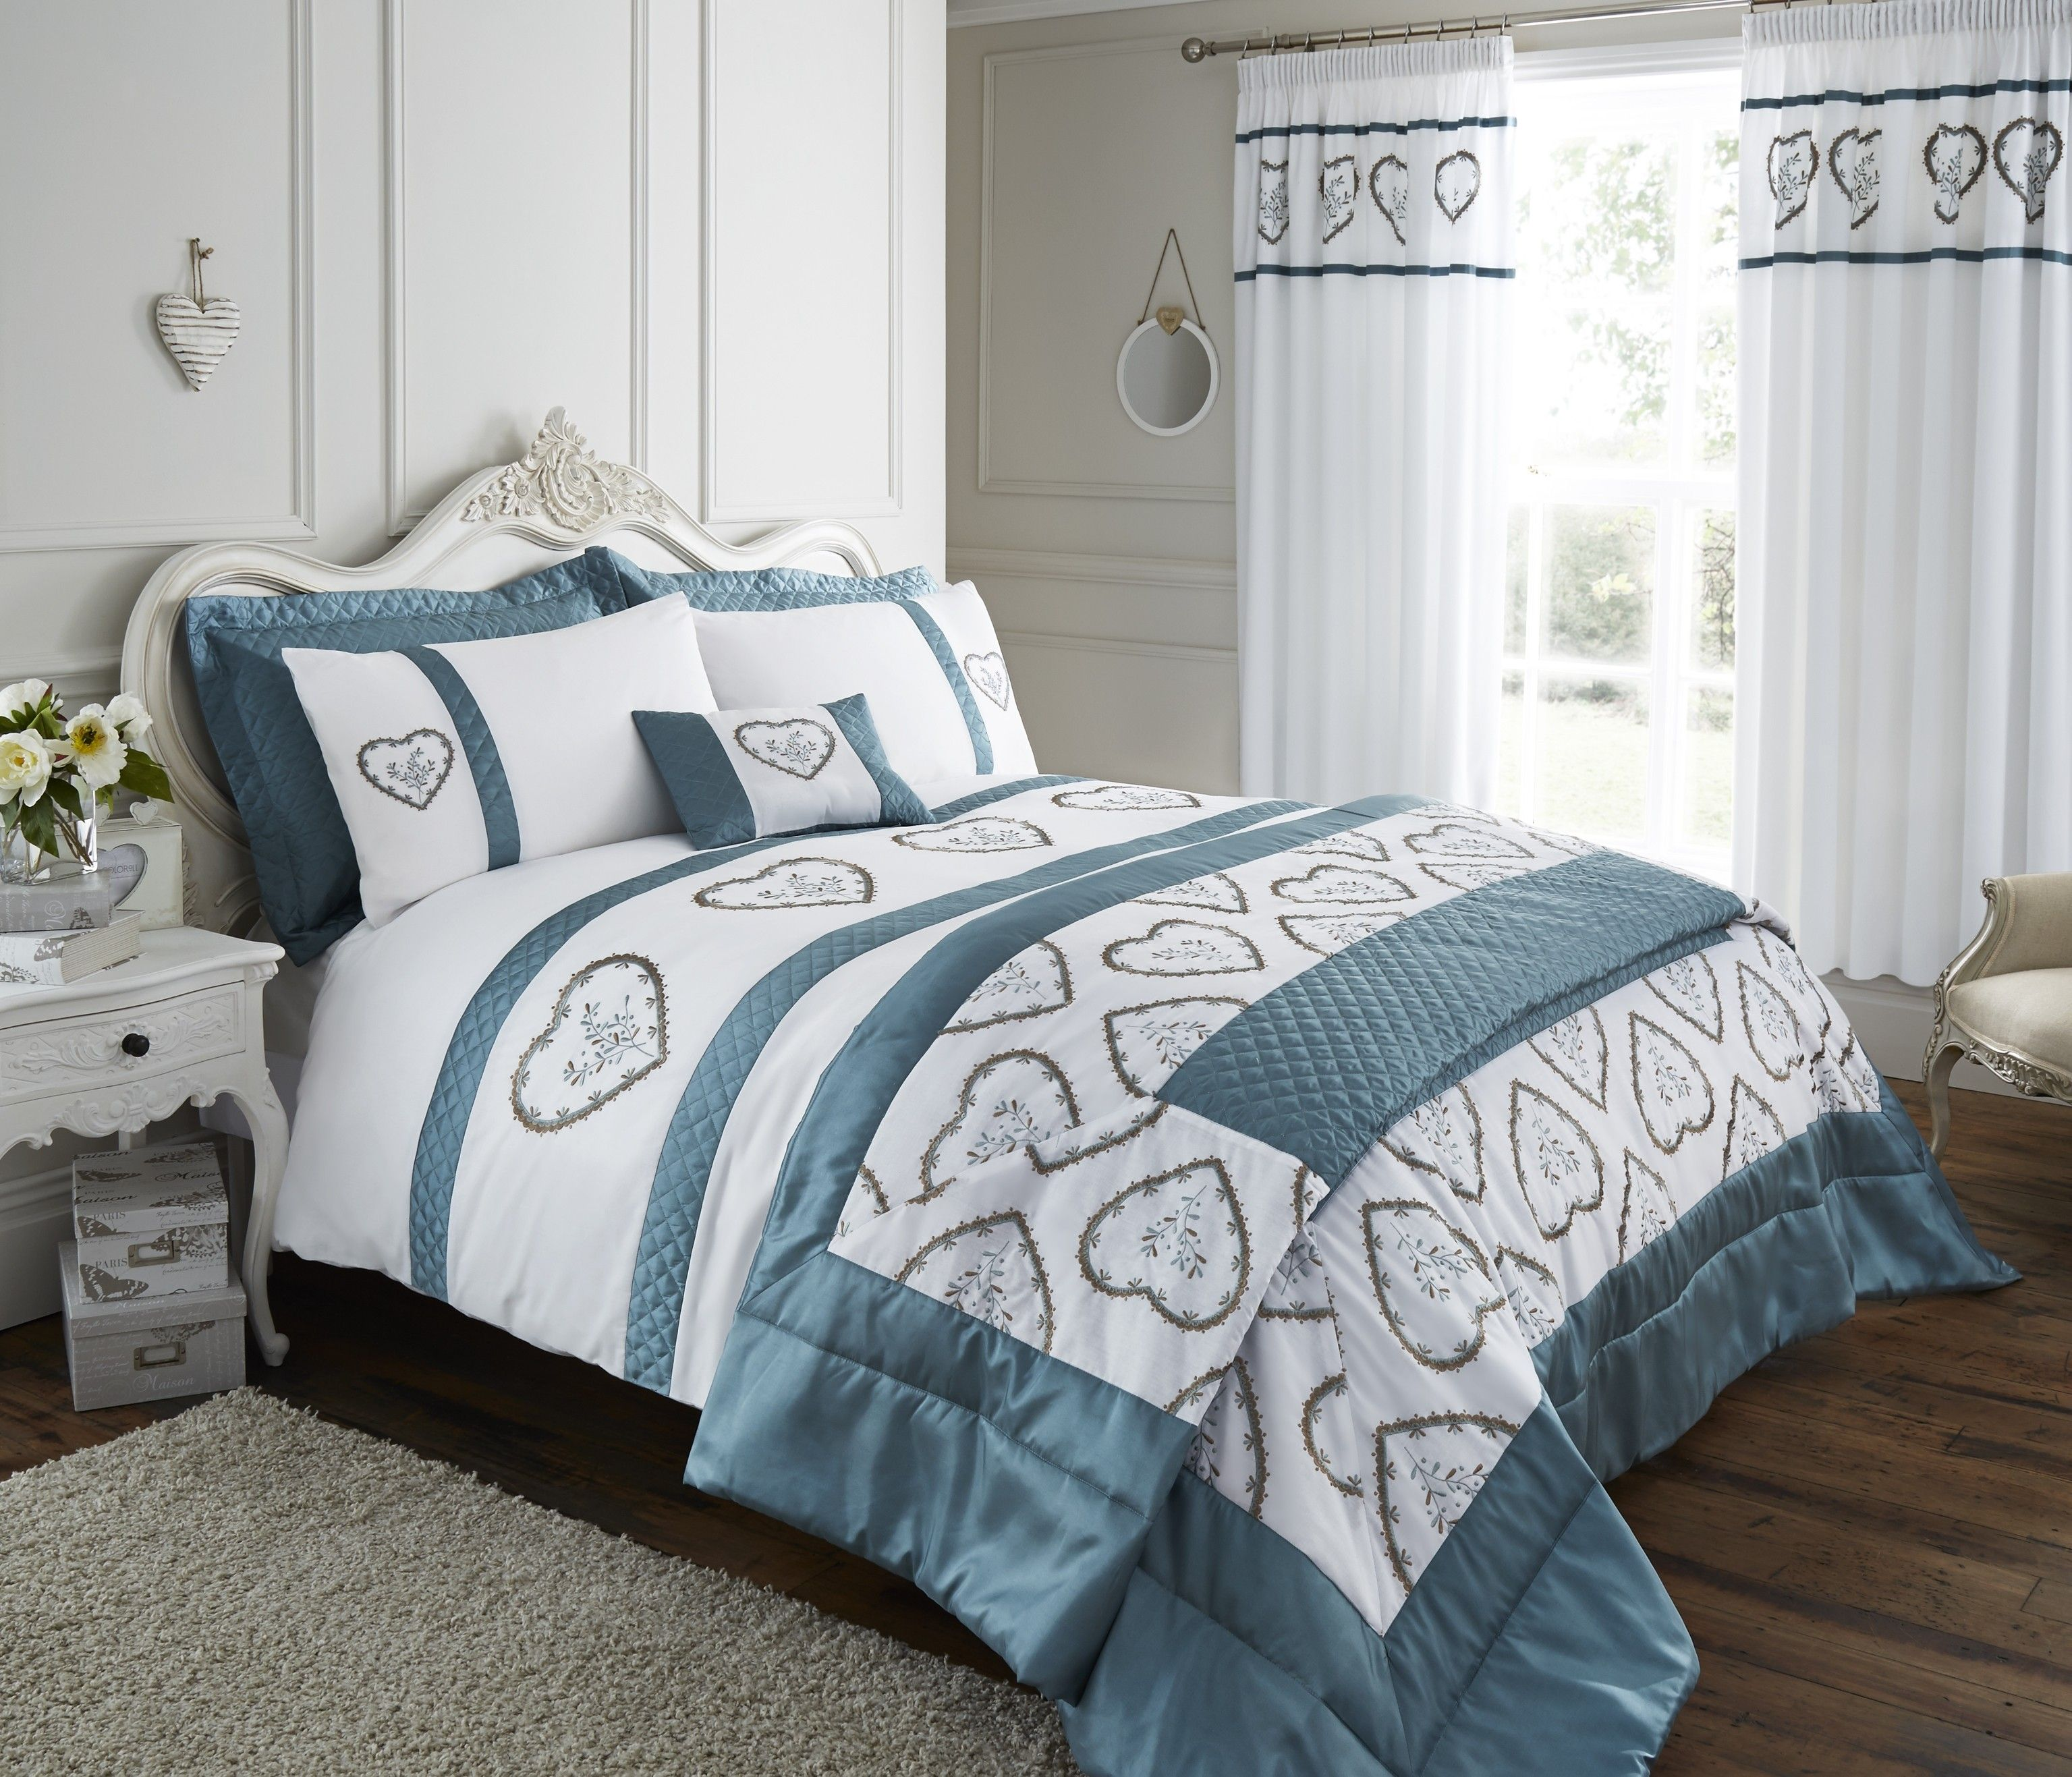 Life From Coloroll Heart Embroidered Panel Duvet Set Duckegg Sets Bedroom Ponden